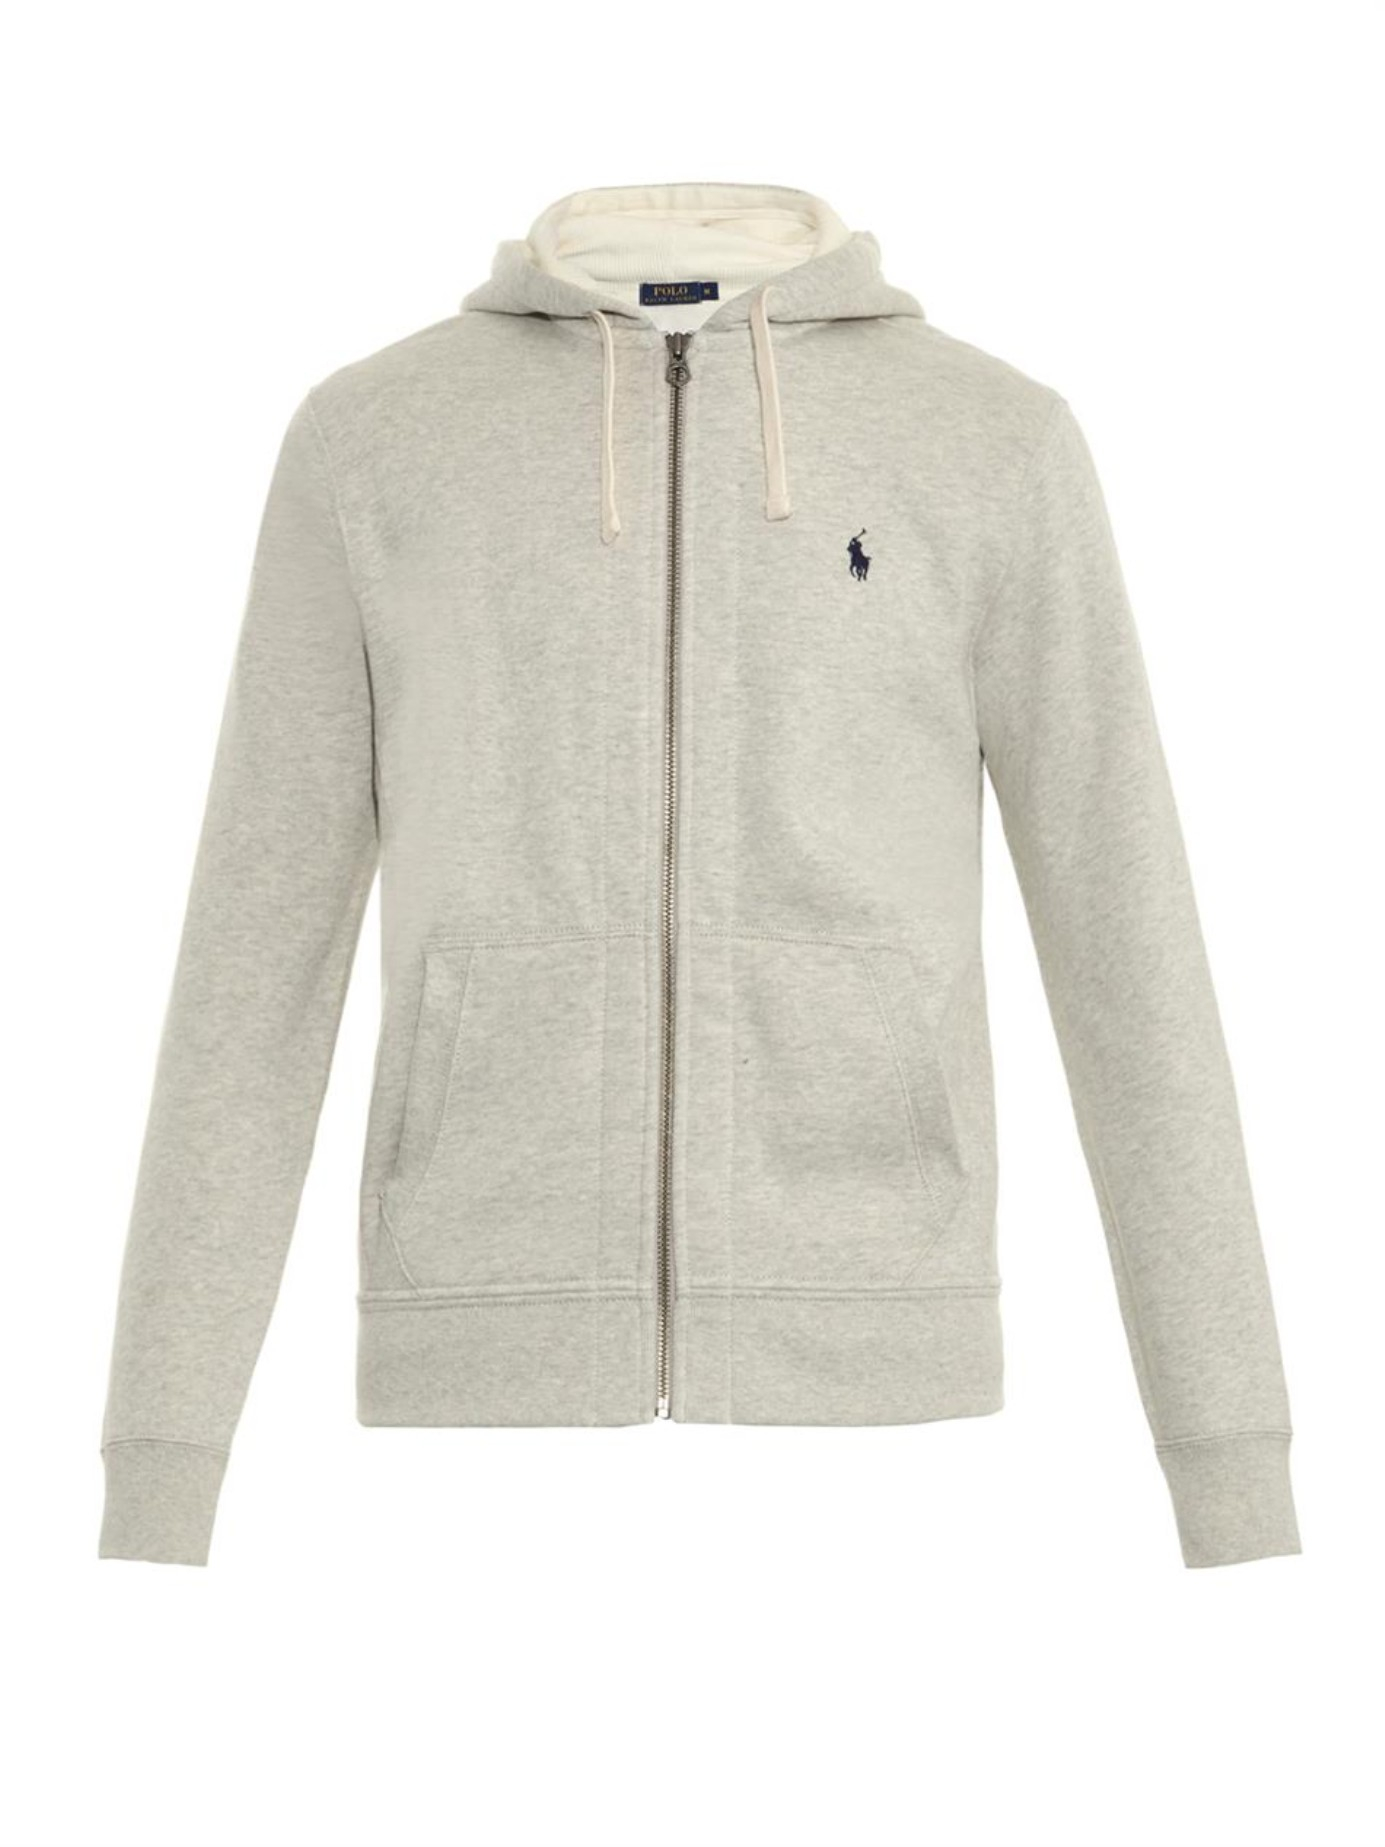 Polo Ralph Lauren | Gray Zip-up Hooded Sweatshirt for Men | Lyst. View Fullscreen